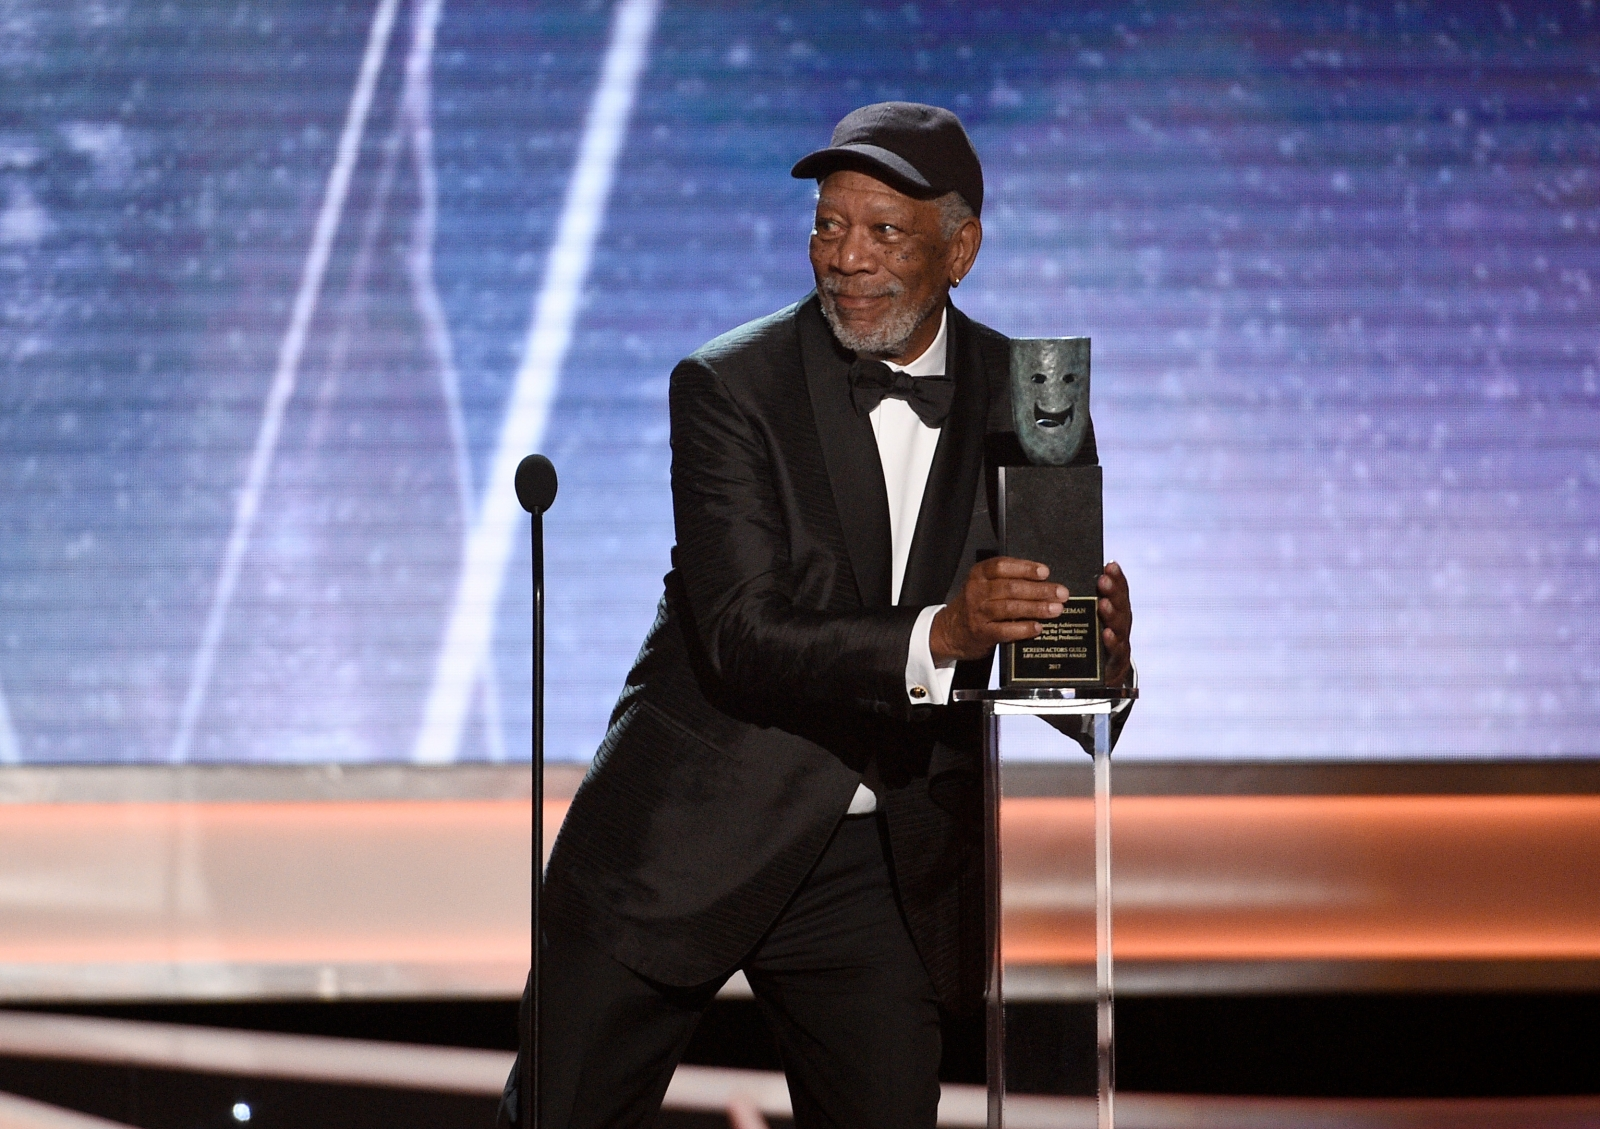 sag-awards-morgan-freeman-calls-out-someone-for-chatting-during-his-lifetime-achievement-speech